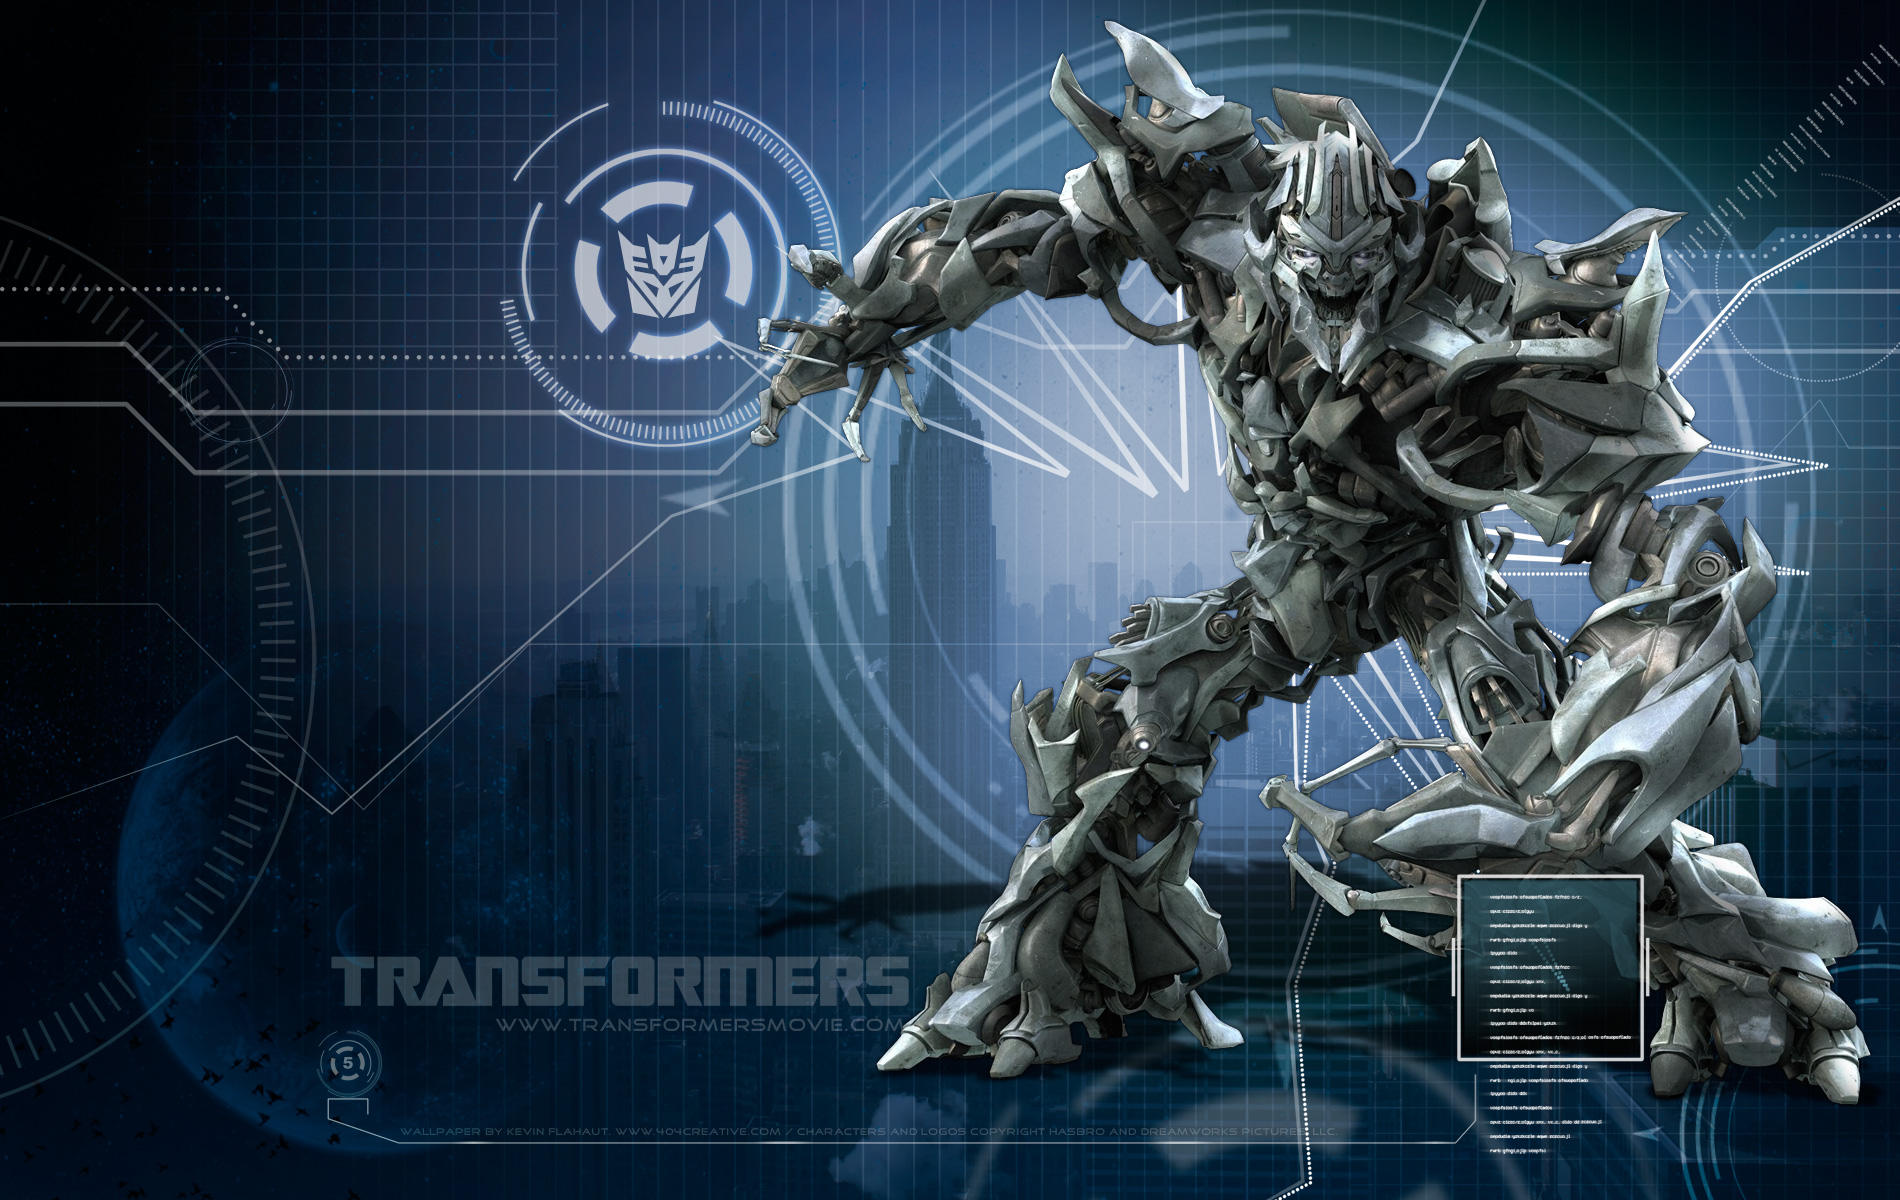 HD Transformers Wallpapers Backgrounds For Download 1900x1200